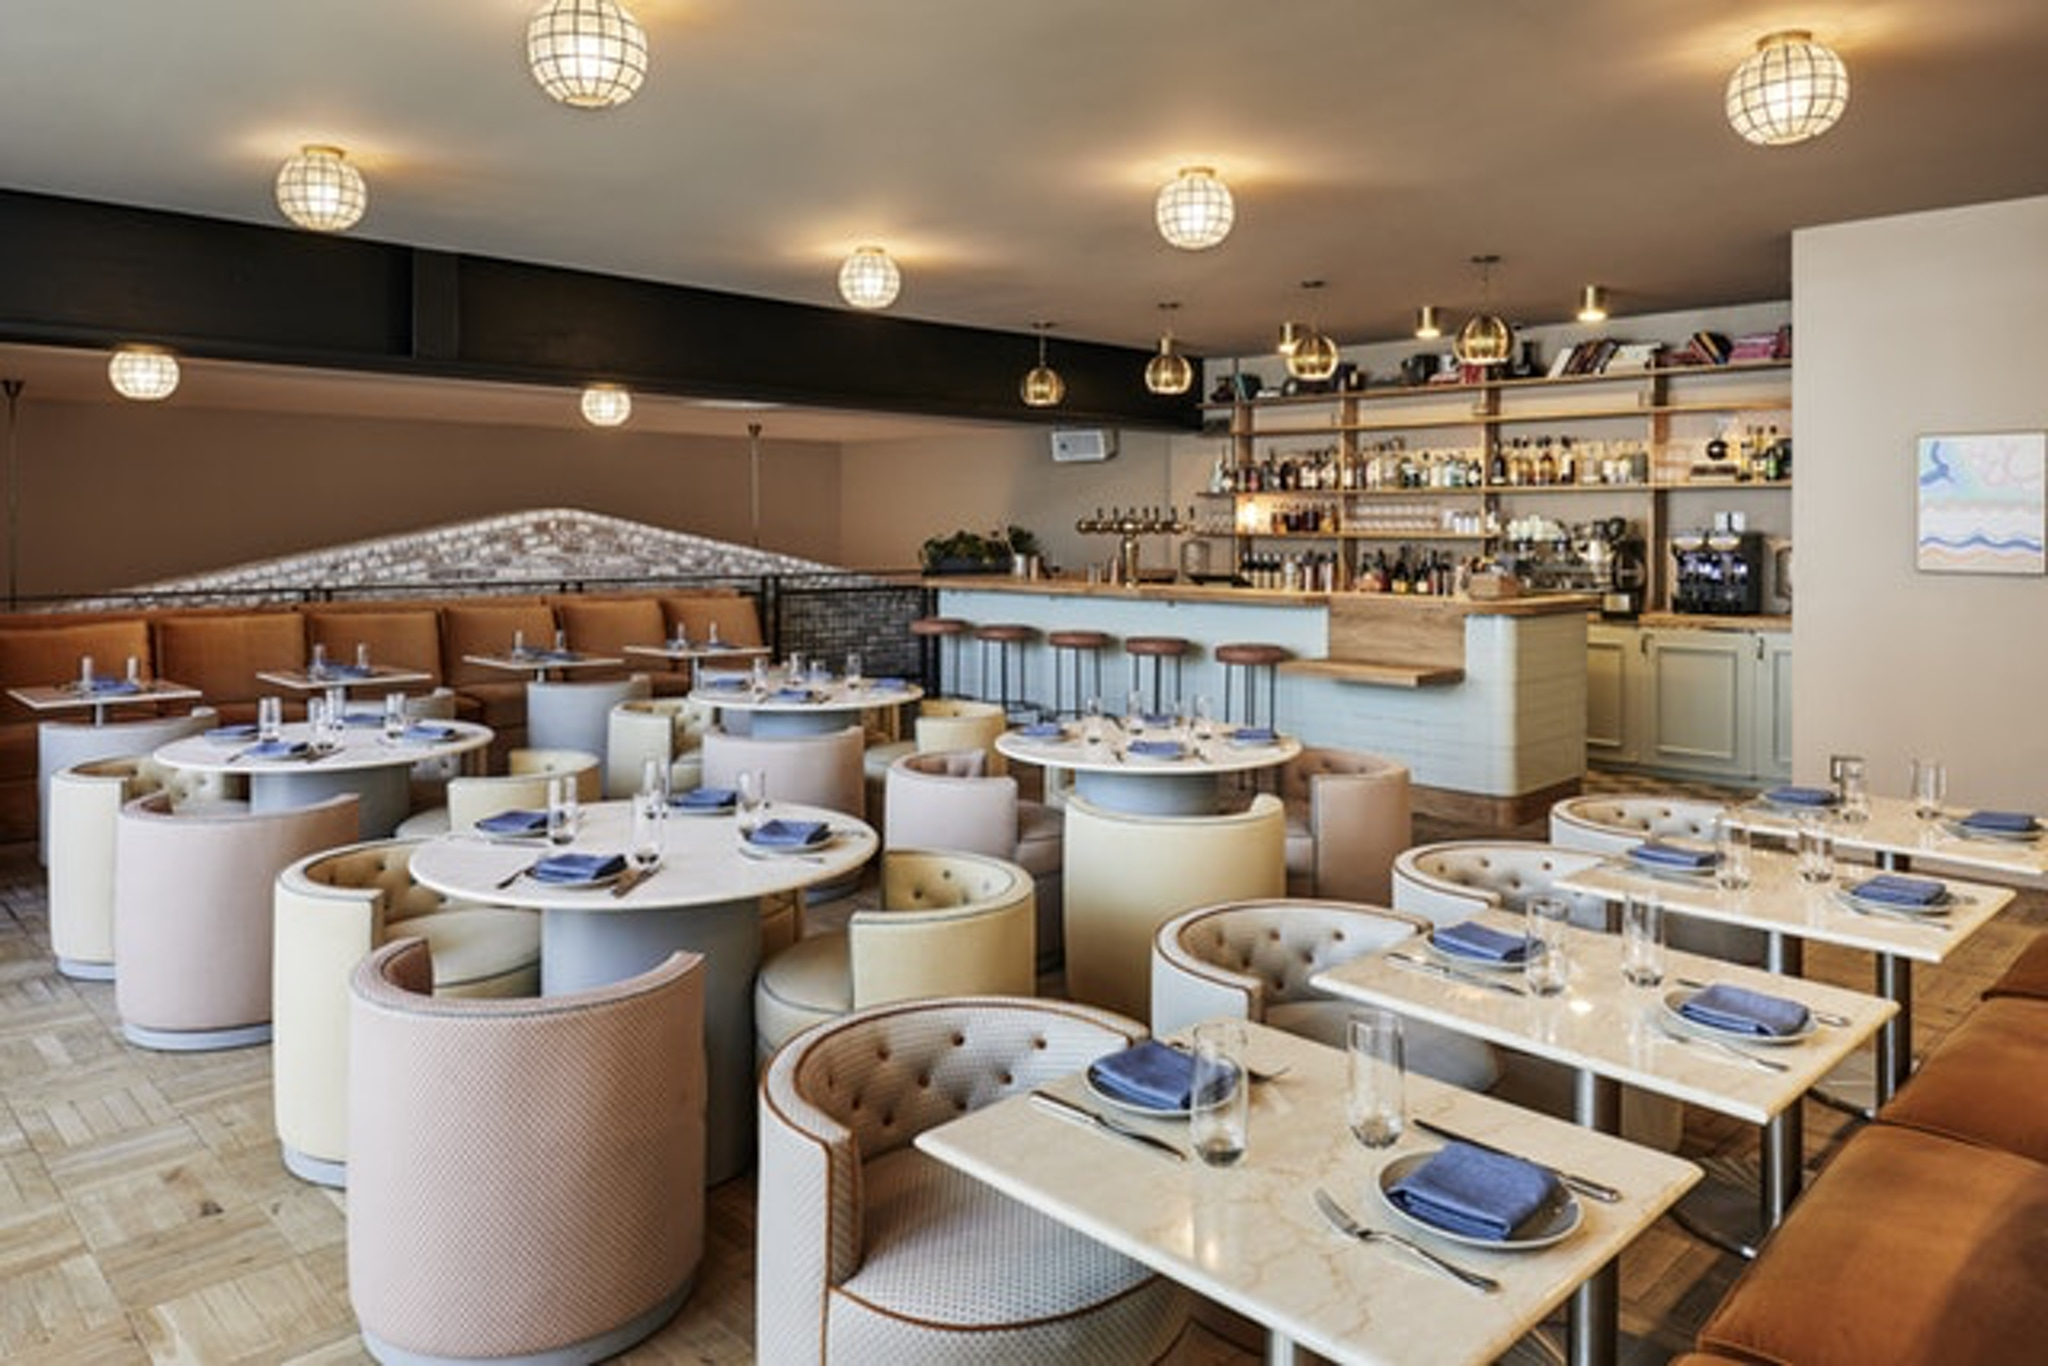 Luxe modern boutique hotel with four beige chairs and blue table setting